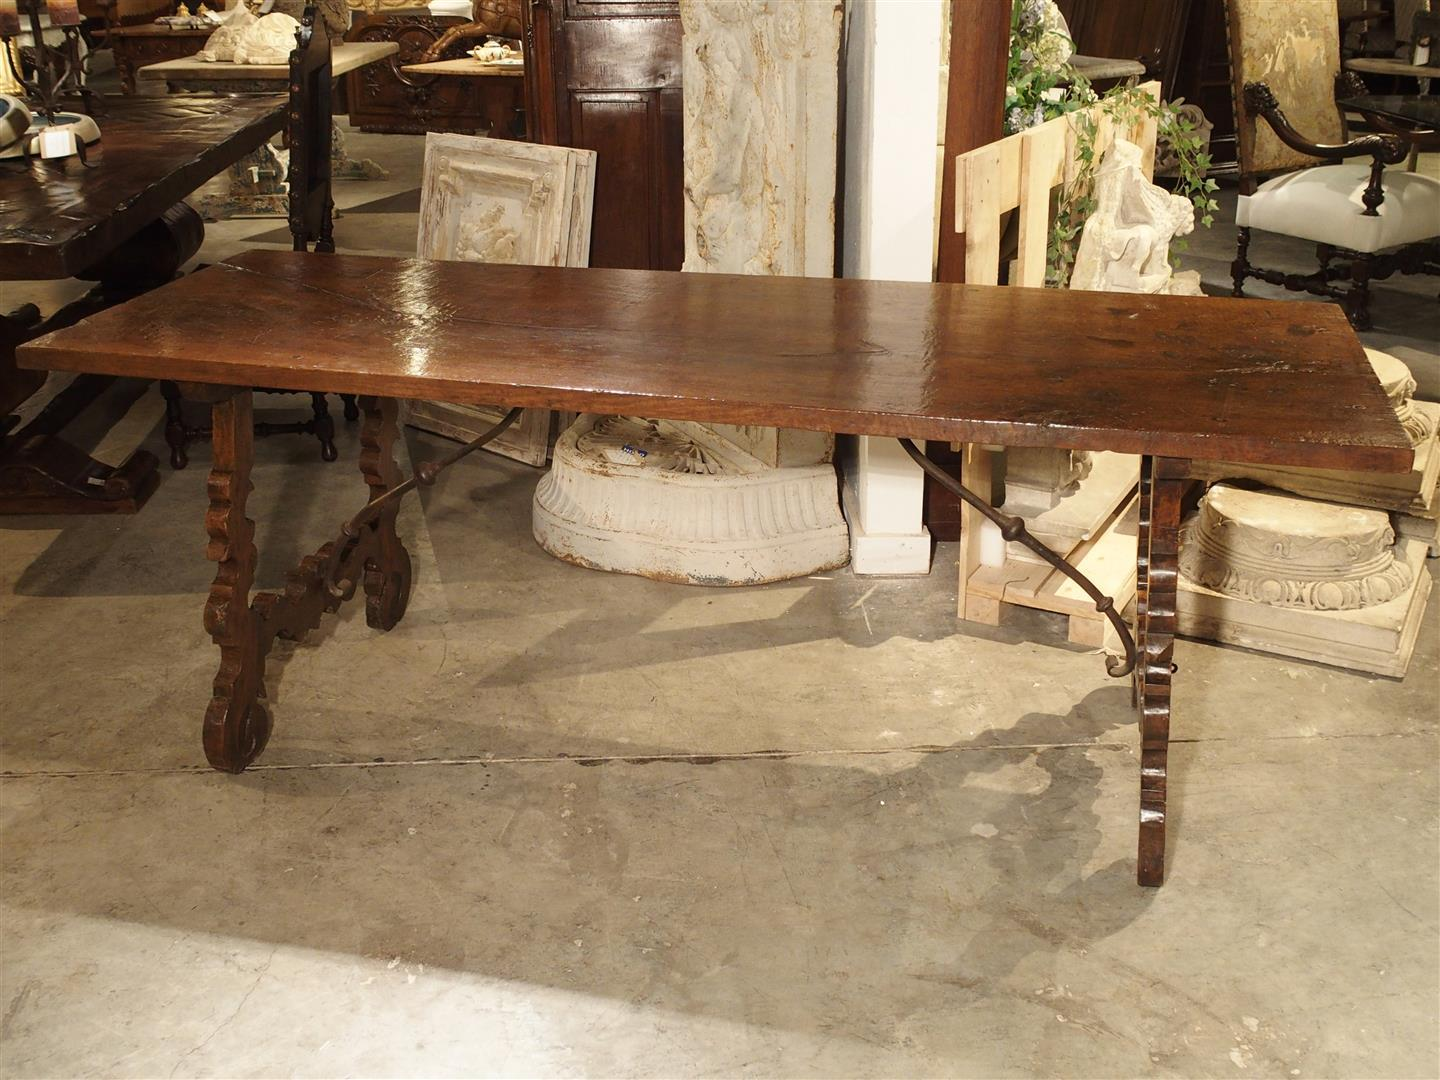 Single Plank Oak And Walnut Wood Refectory Table From Spain, 18th Century    Image 10